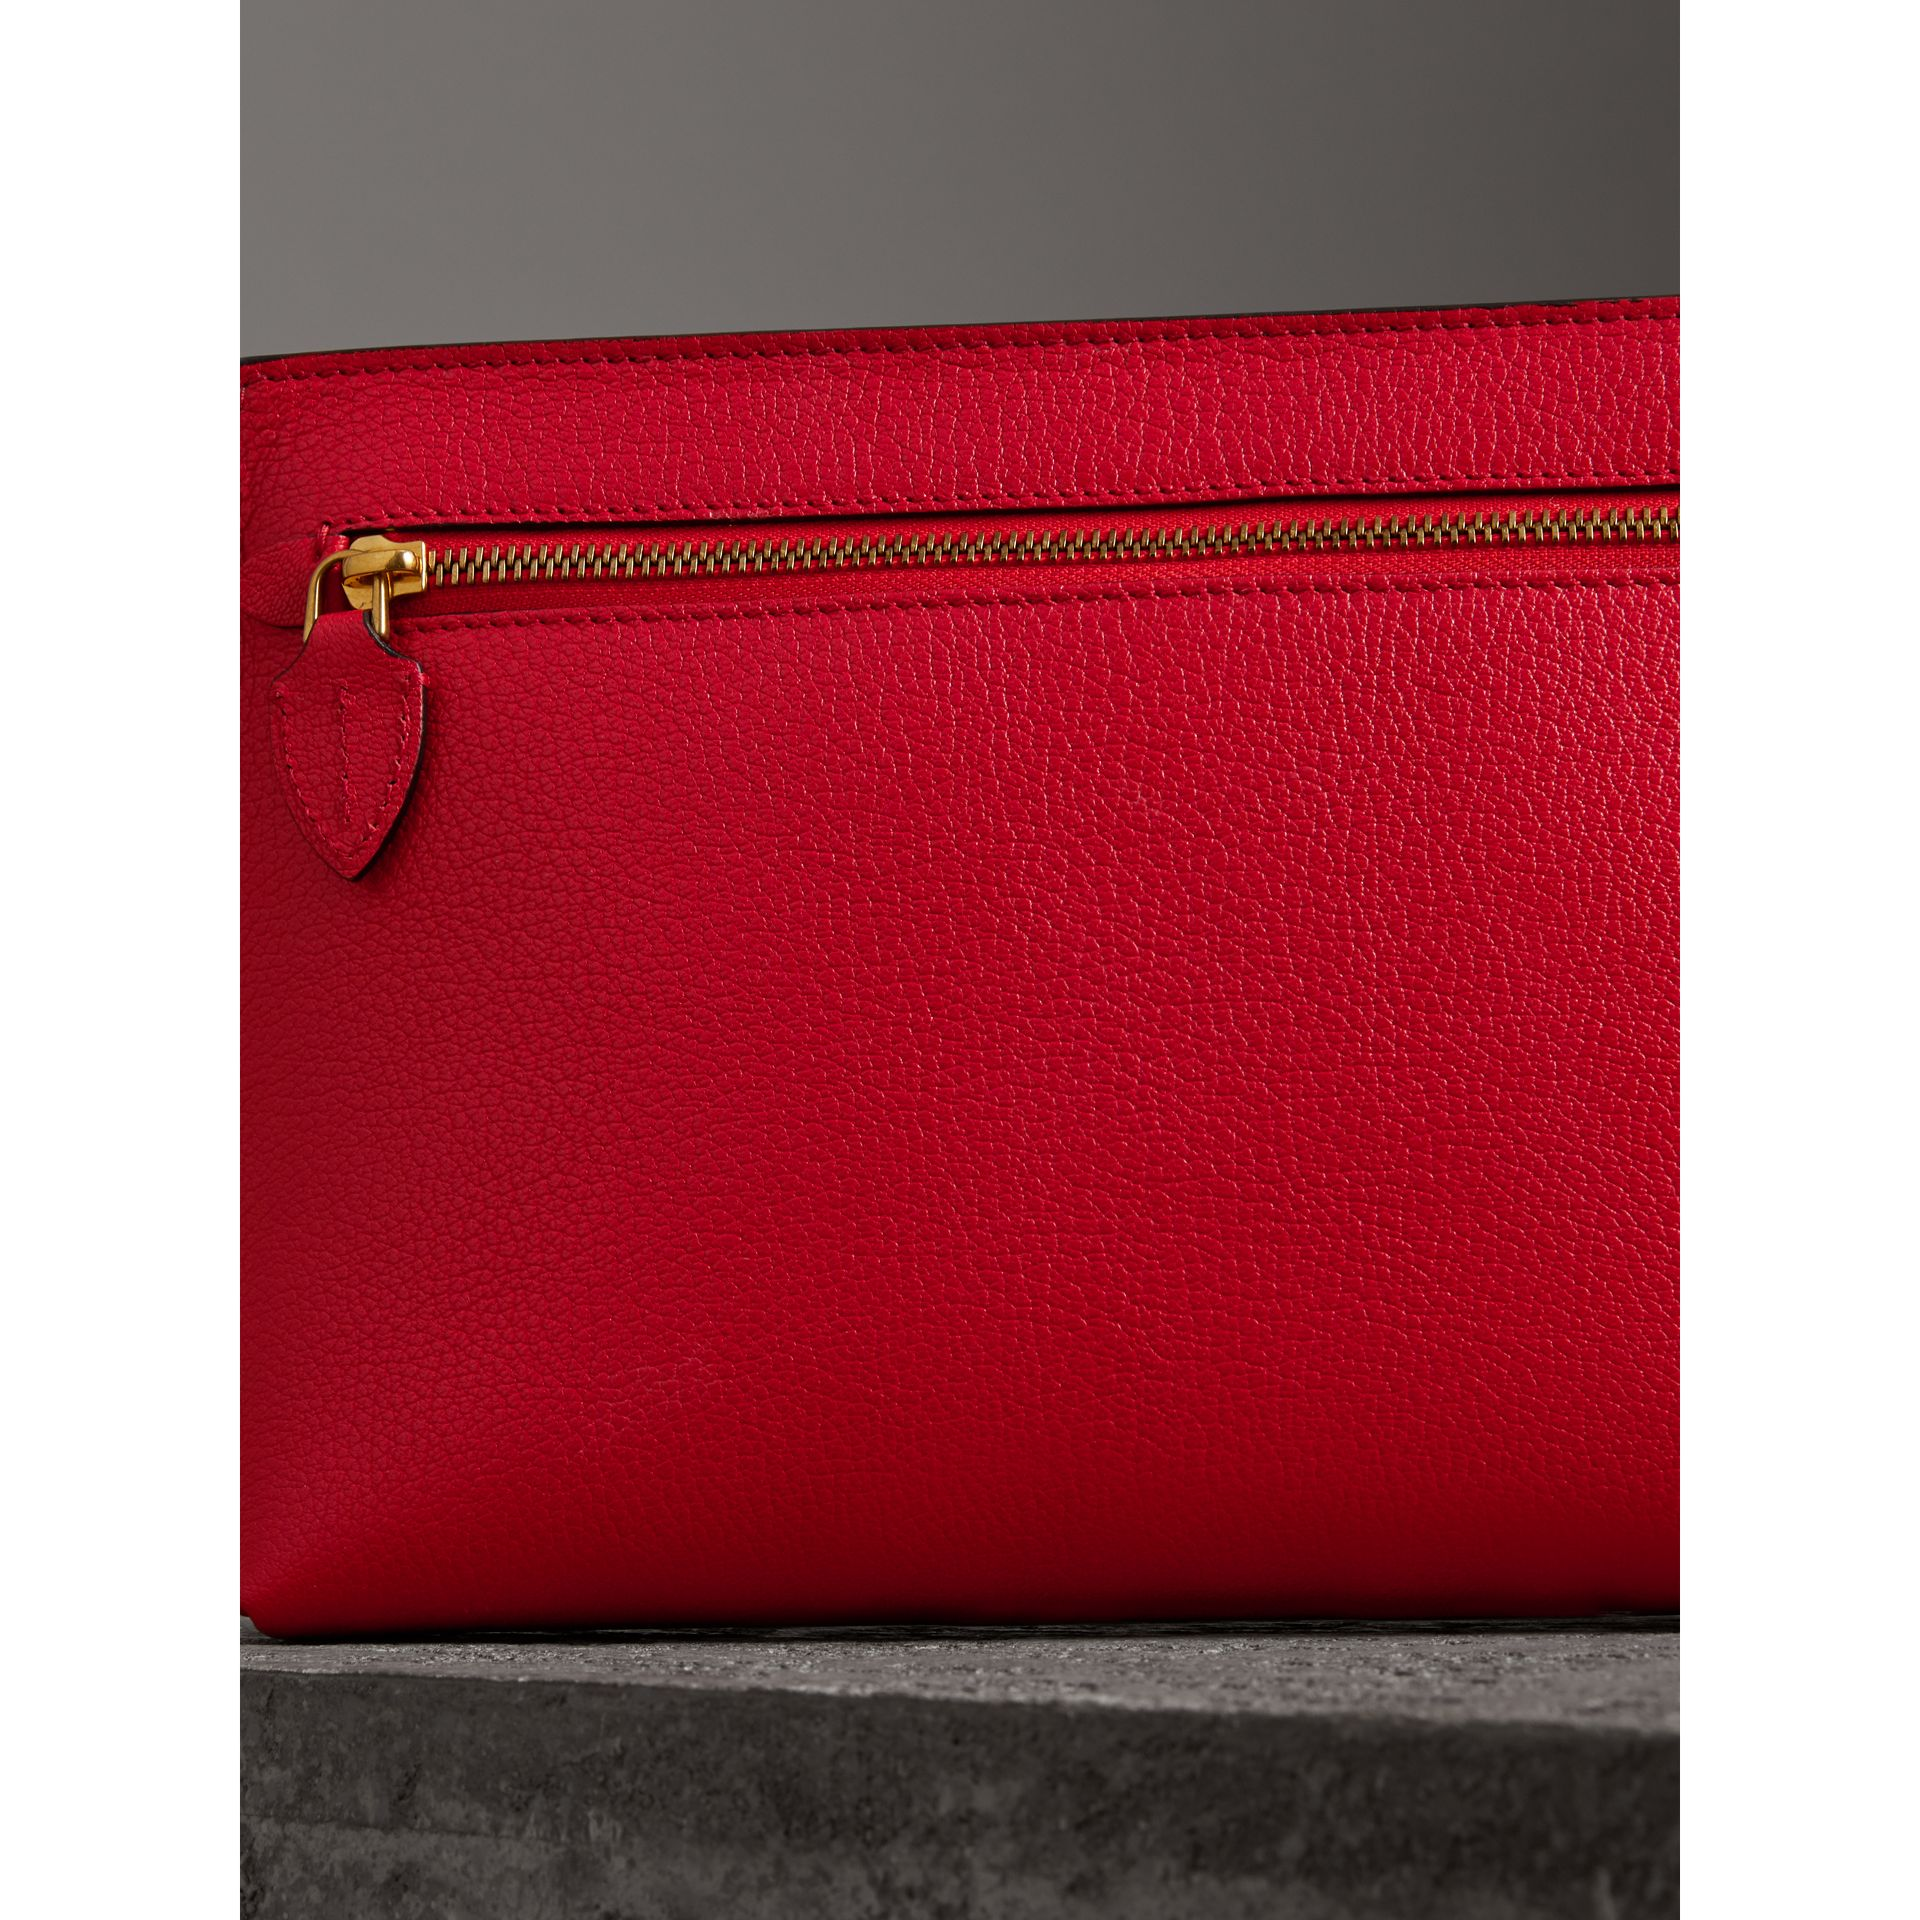 Grainy Leather Wristlet Clutch in Bright Red - Women | Burberry Canada - gallery image 2